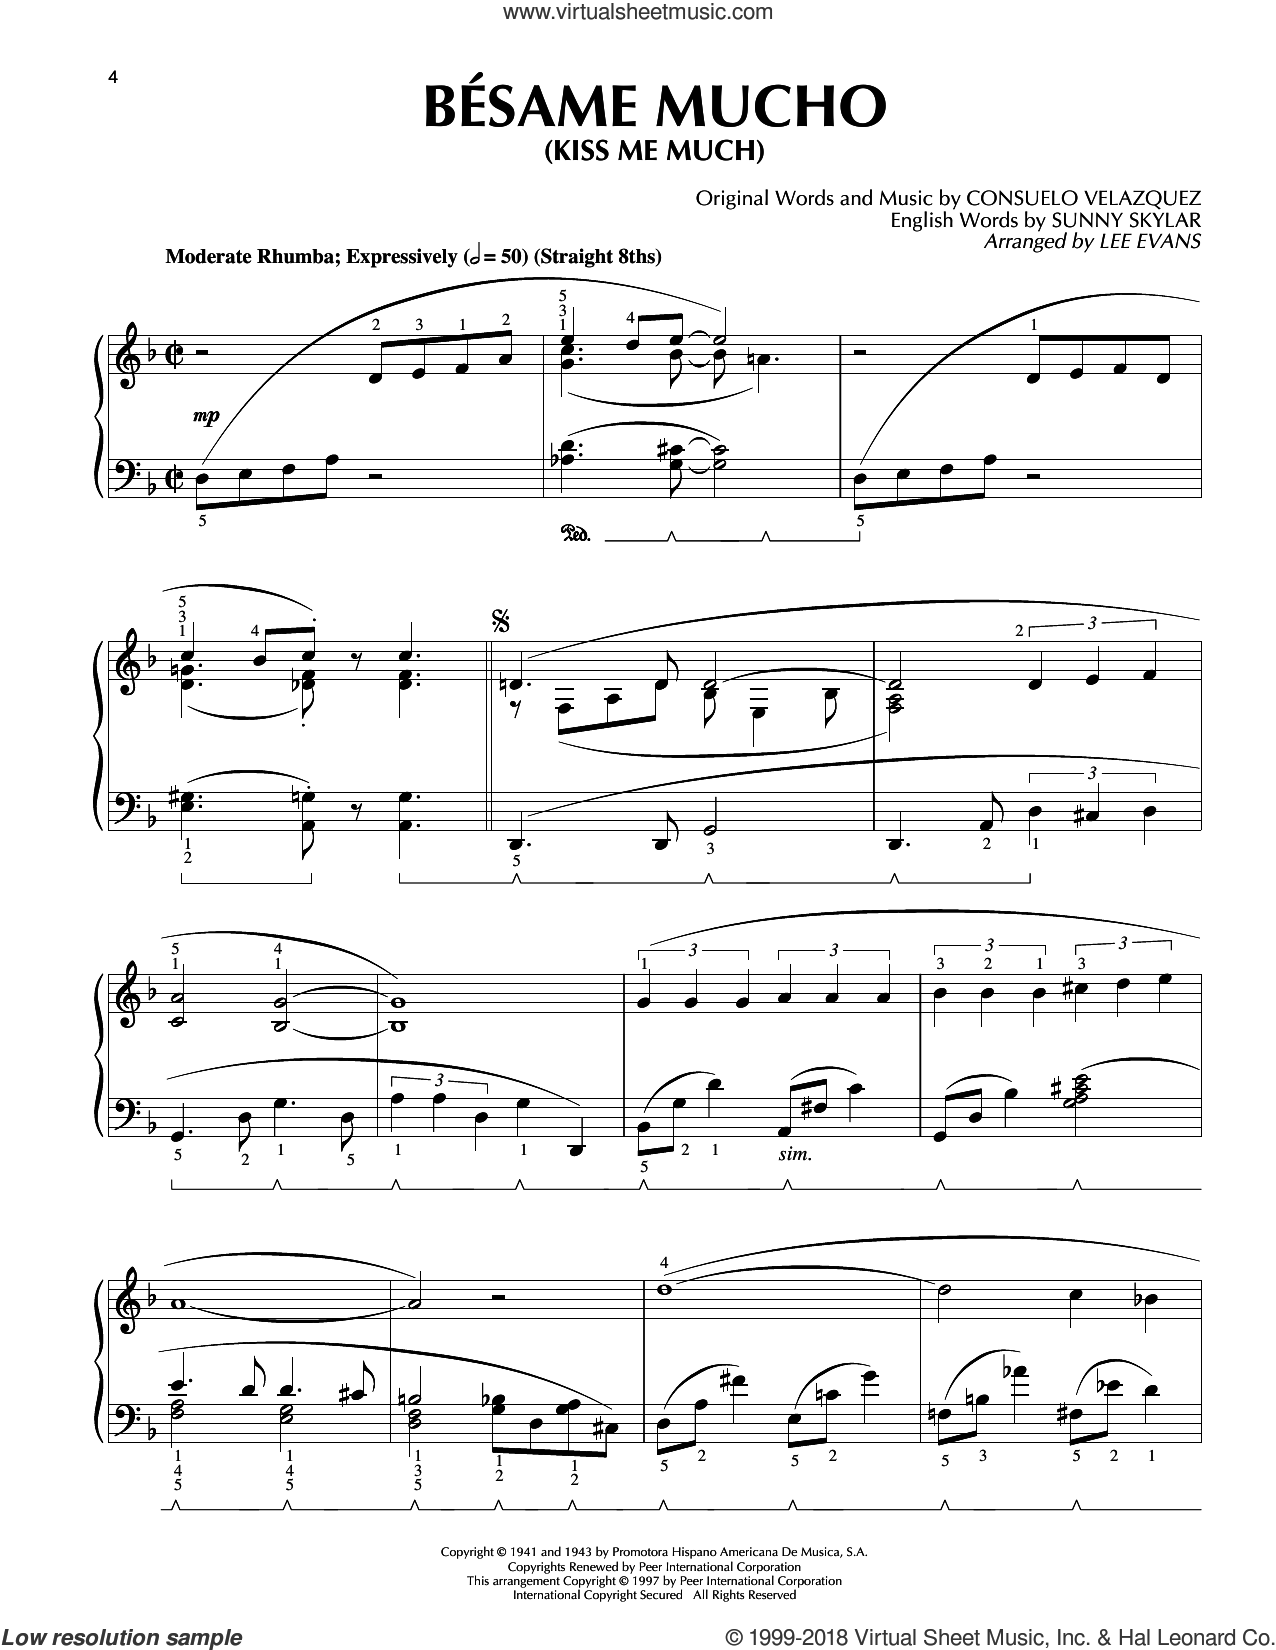 Besame Mucho (Kiss Me Much) sheet music for piano solo by Consuelo Velazquez, Lee Evans, The Beatles and The Coasters, intermediate skill level